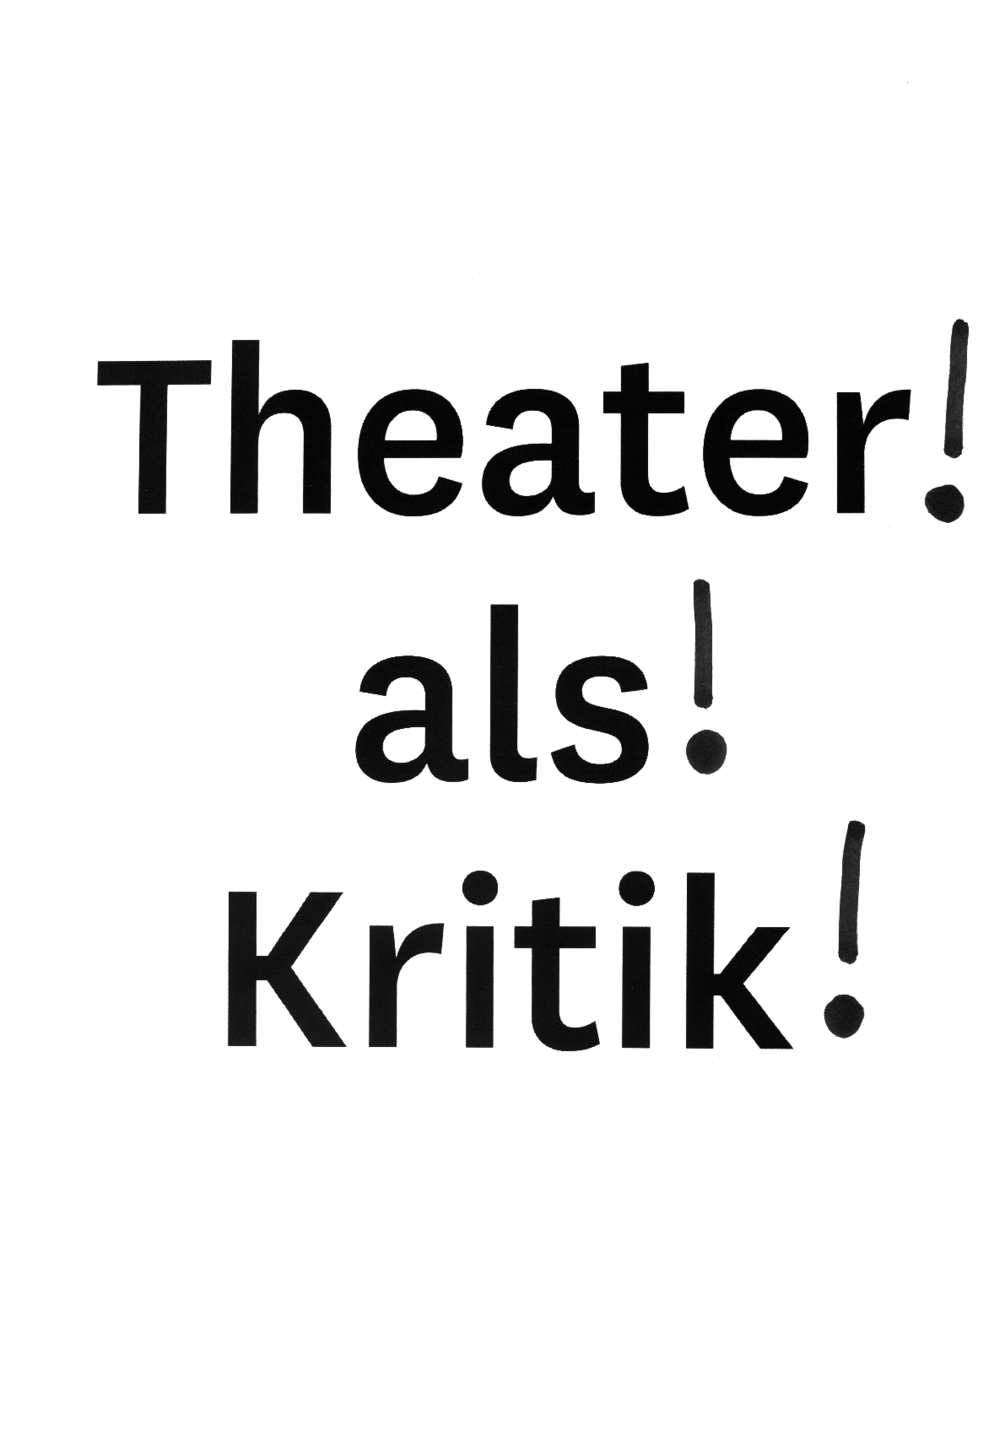 theater-as-critique-slip-06-1005x1435px